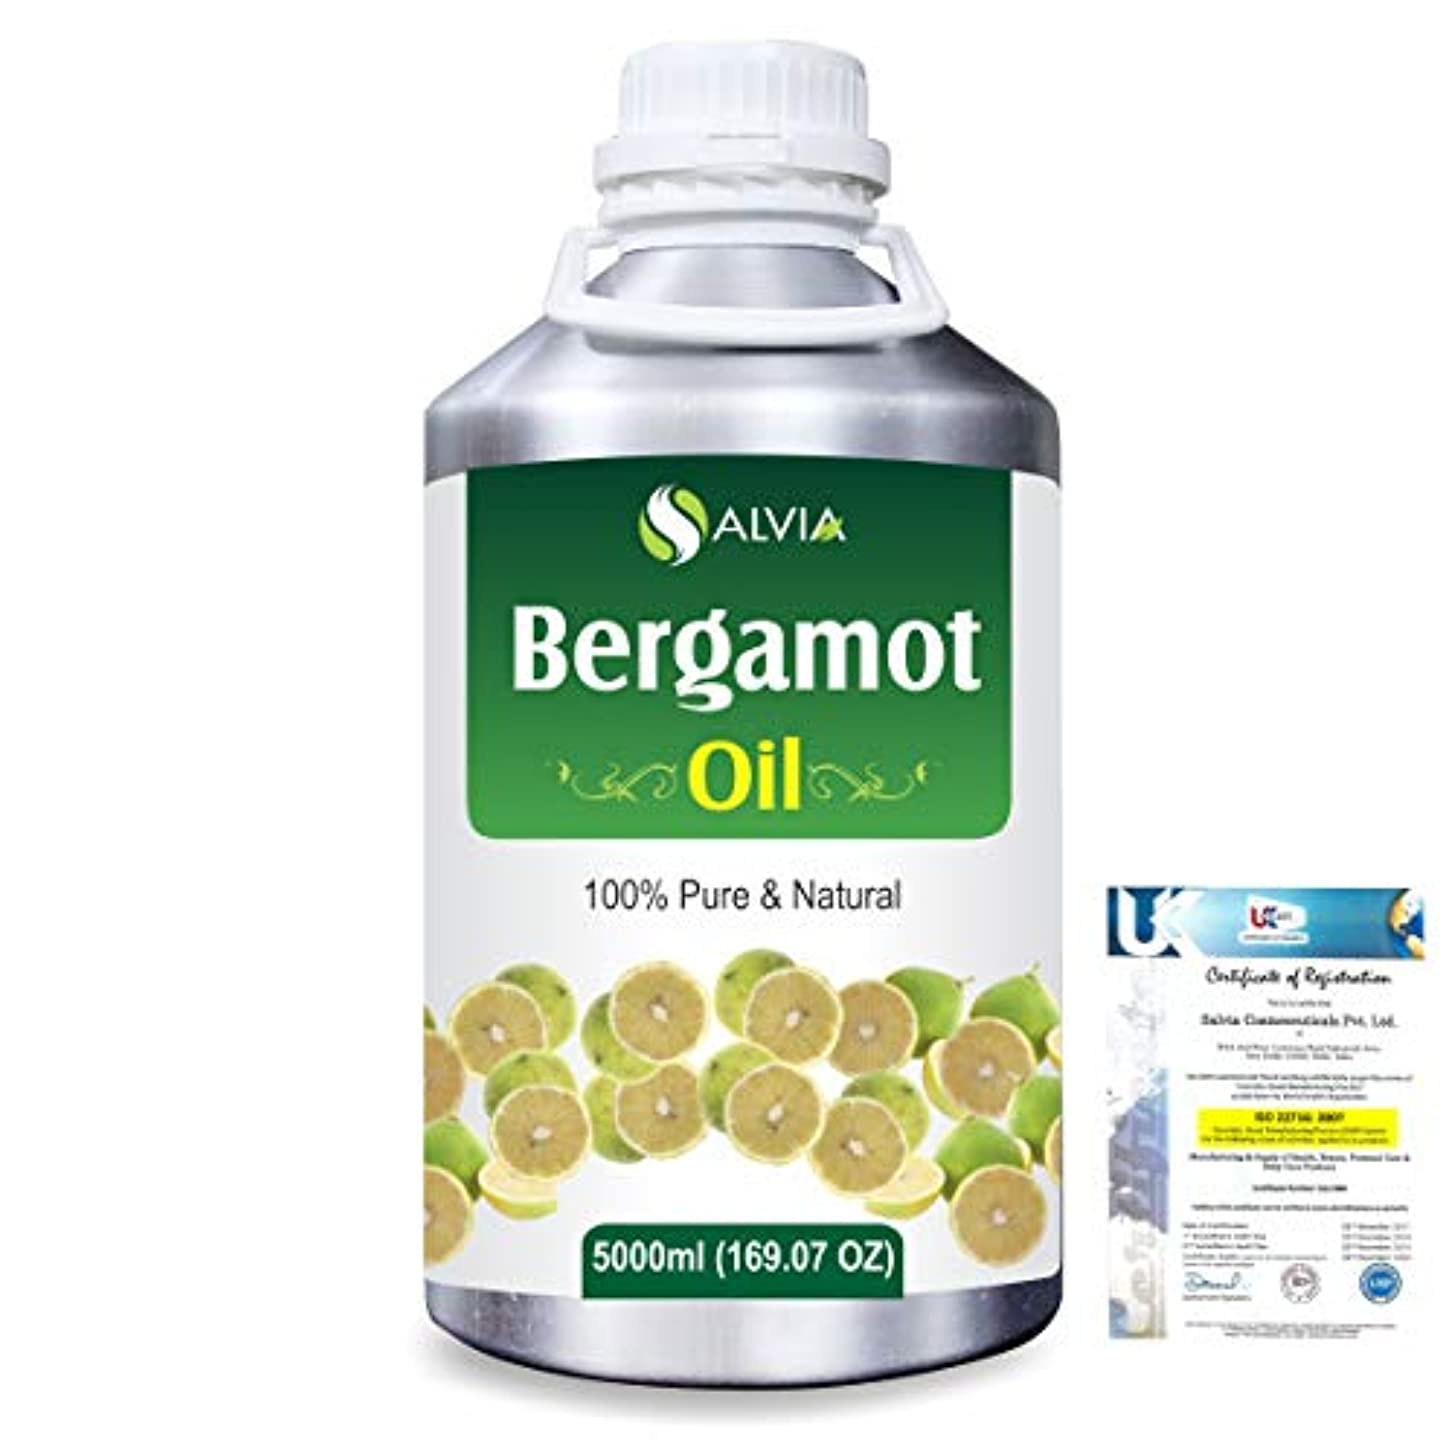 Bergamot (Citrus aurantium) 100% Natural Pure Essential Oil 5000ml/169fl.oz.